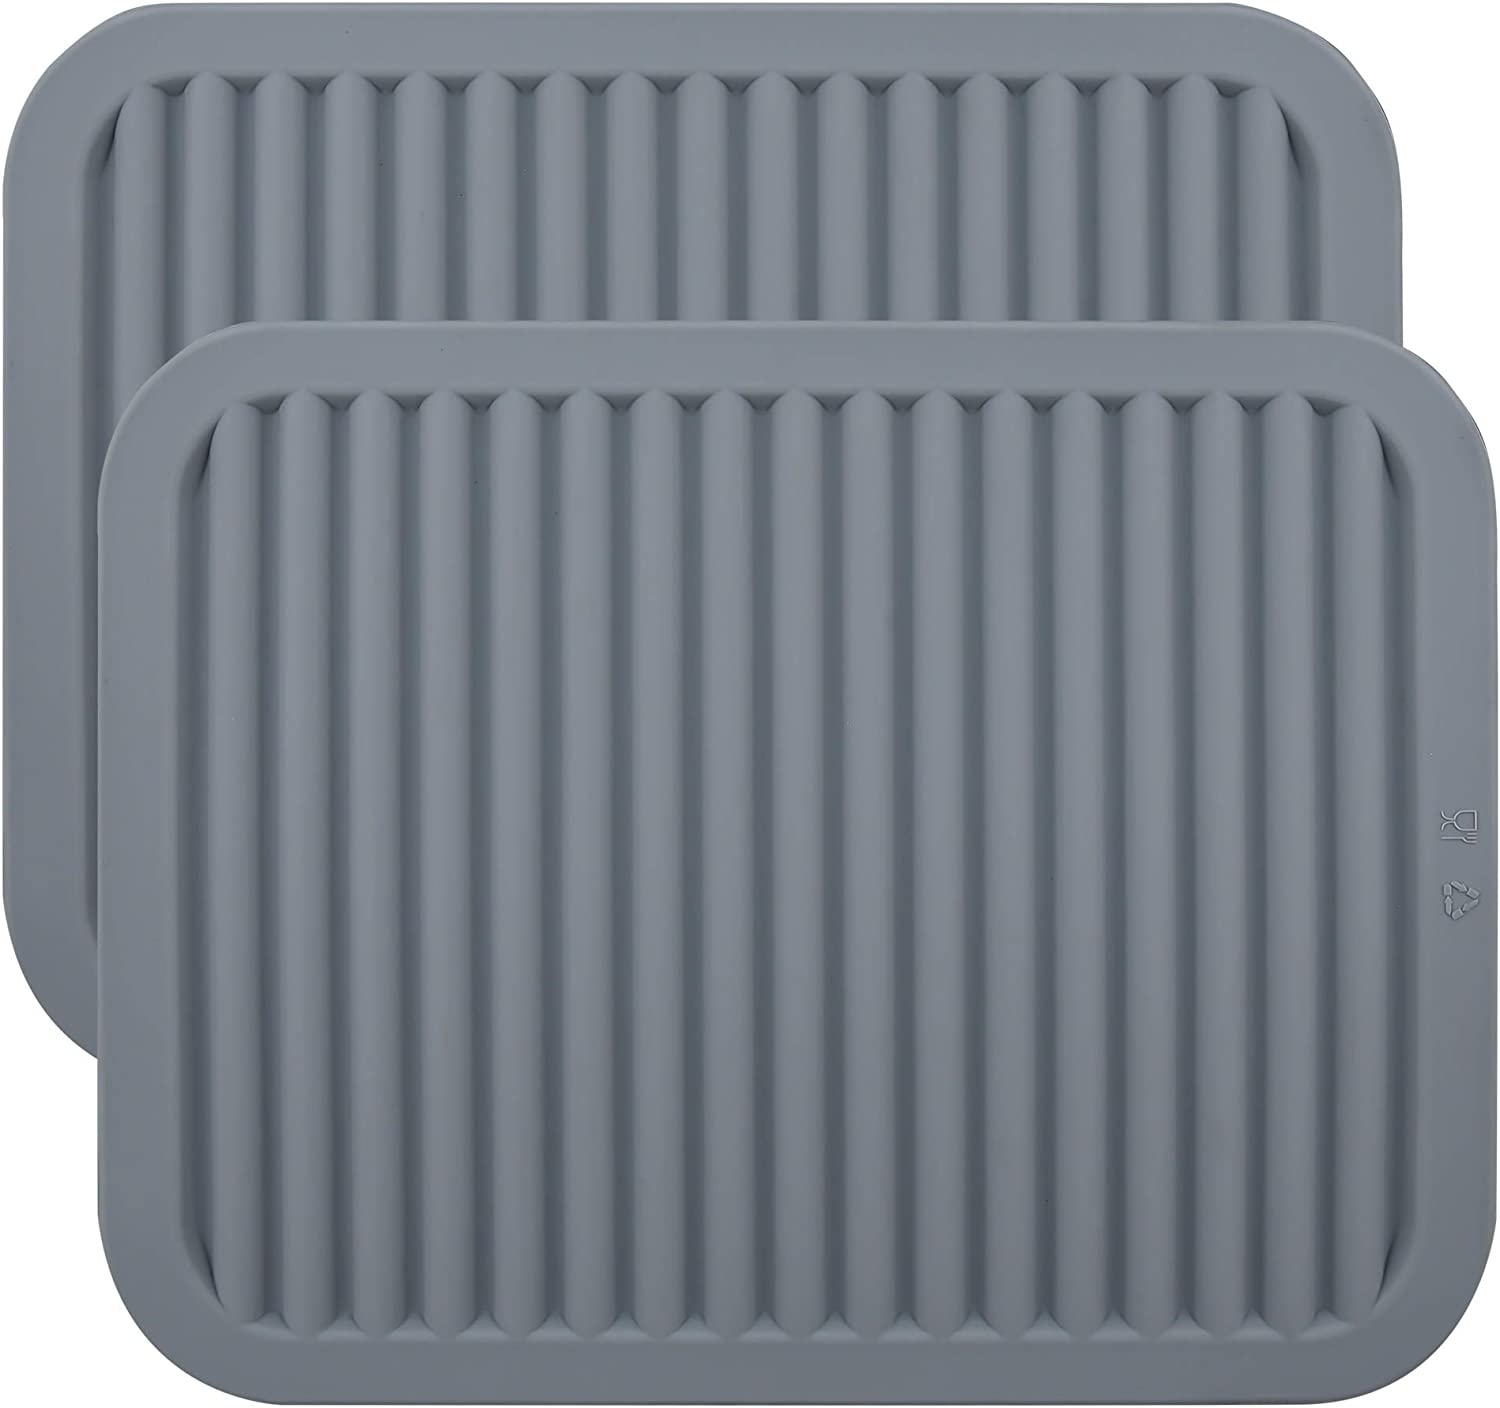 Smithcraft Silicone trivet Mat for Hot Pan and Pot Hot Pads Counter Mat Heat Resistant Table Dish Drying Mat or Placemats 2 Pack,Size:9x12 Inch, Shape:Rectangular Color Grey